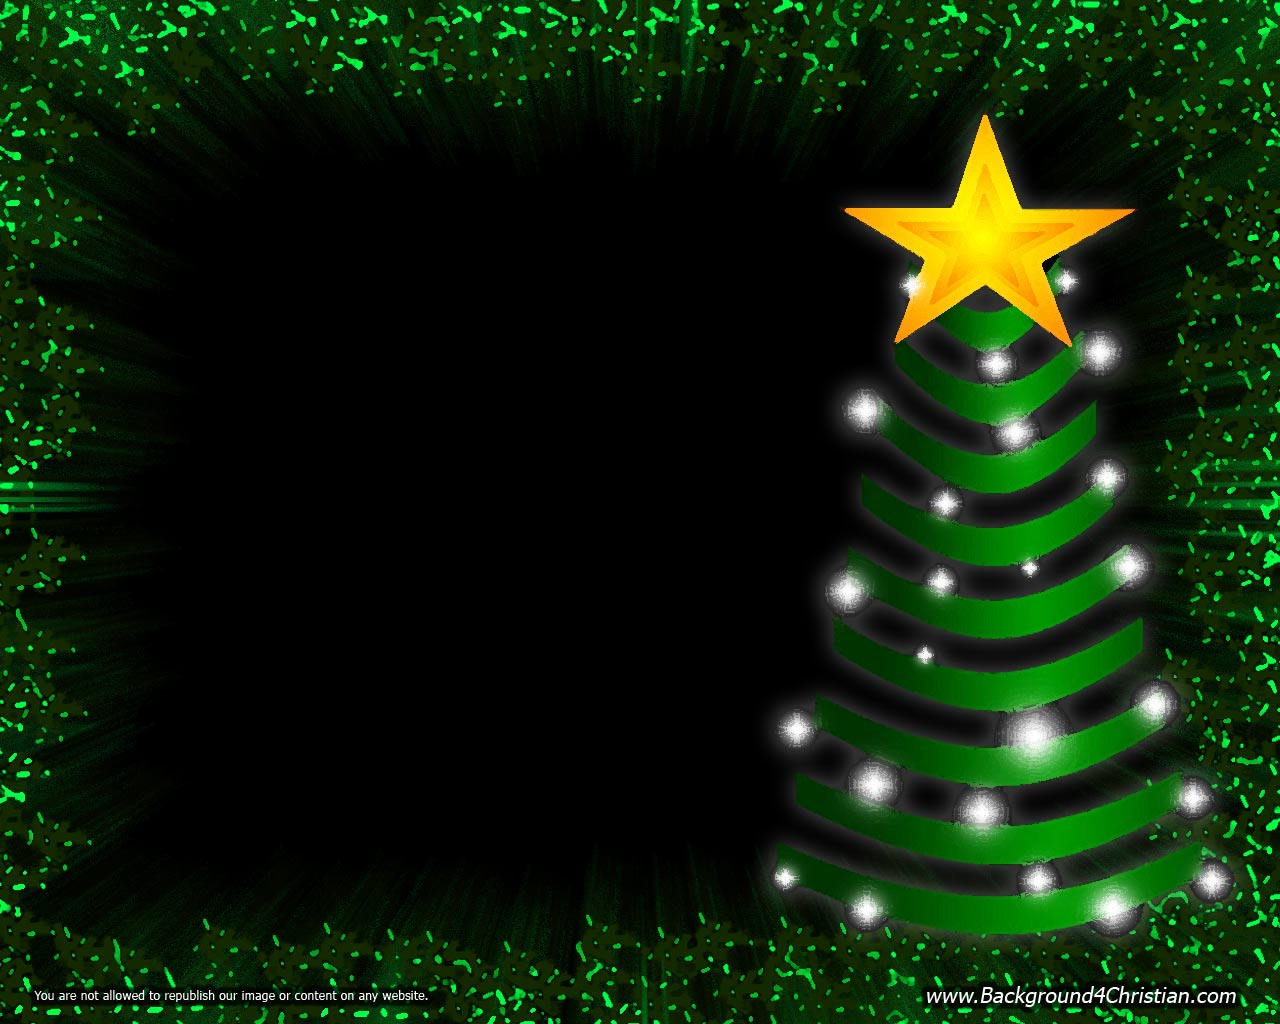 christmas template for powerpoint | background 4 christian, Powerpoint templates